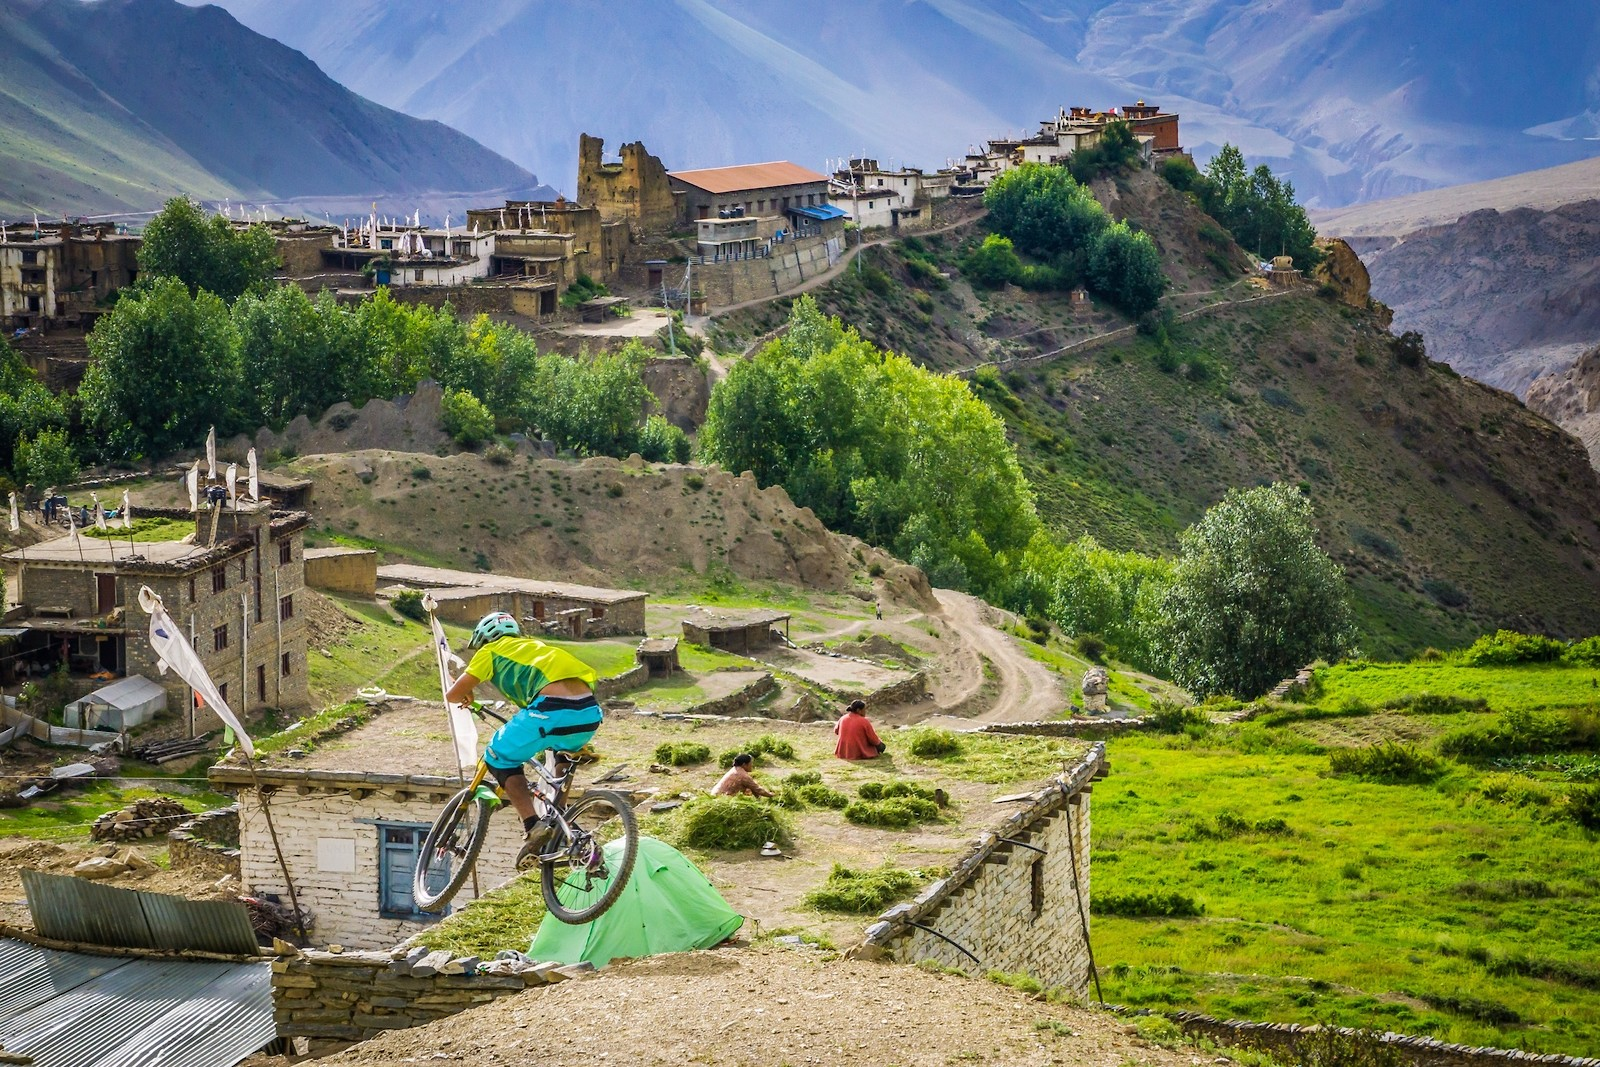 Riding in Jharkot Nepal - Malcolm Mclaws - Mountain Biking Pictures - Vital MTB